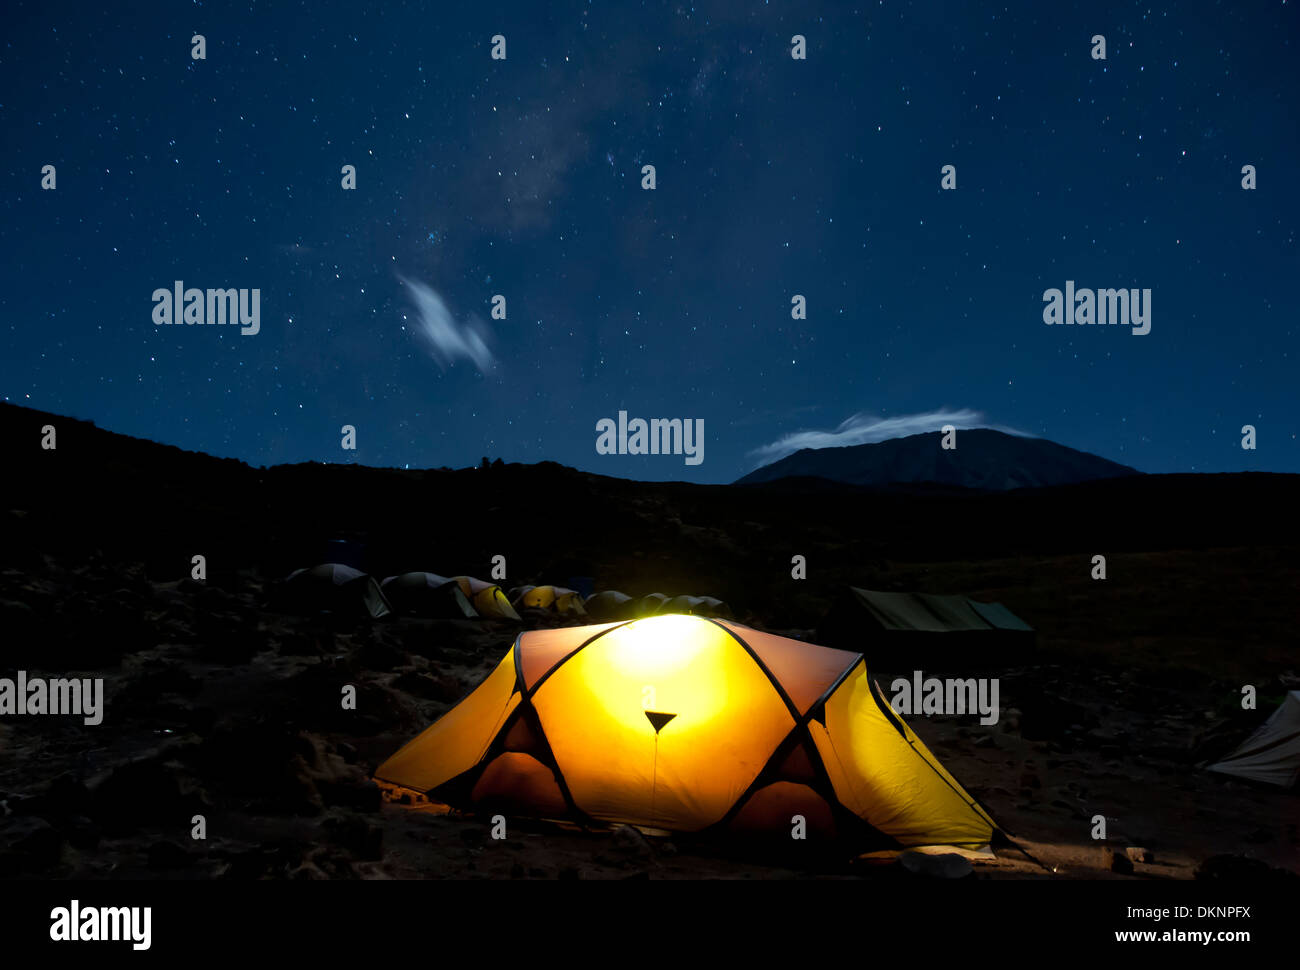 Kikelelwa Cave campsite on Rongai Route at night with Kilimanjaro shrouded in clouds under the stars and milky way - Stock Image